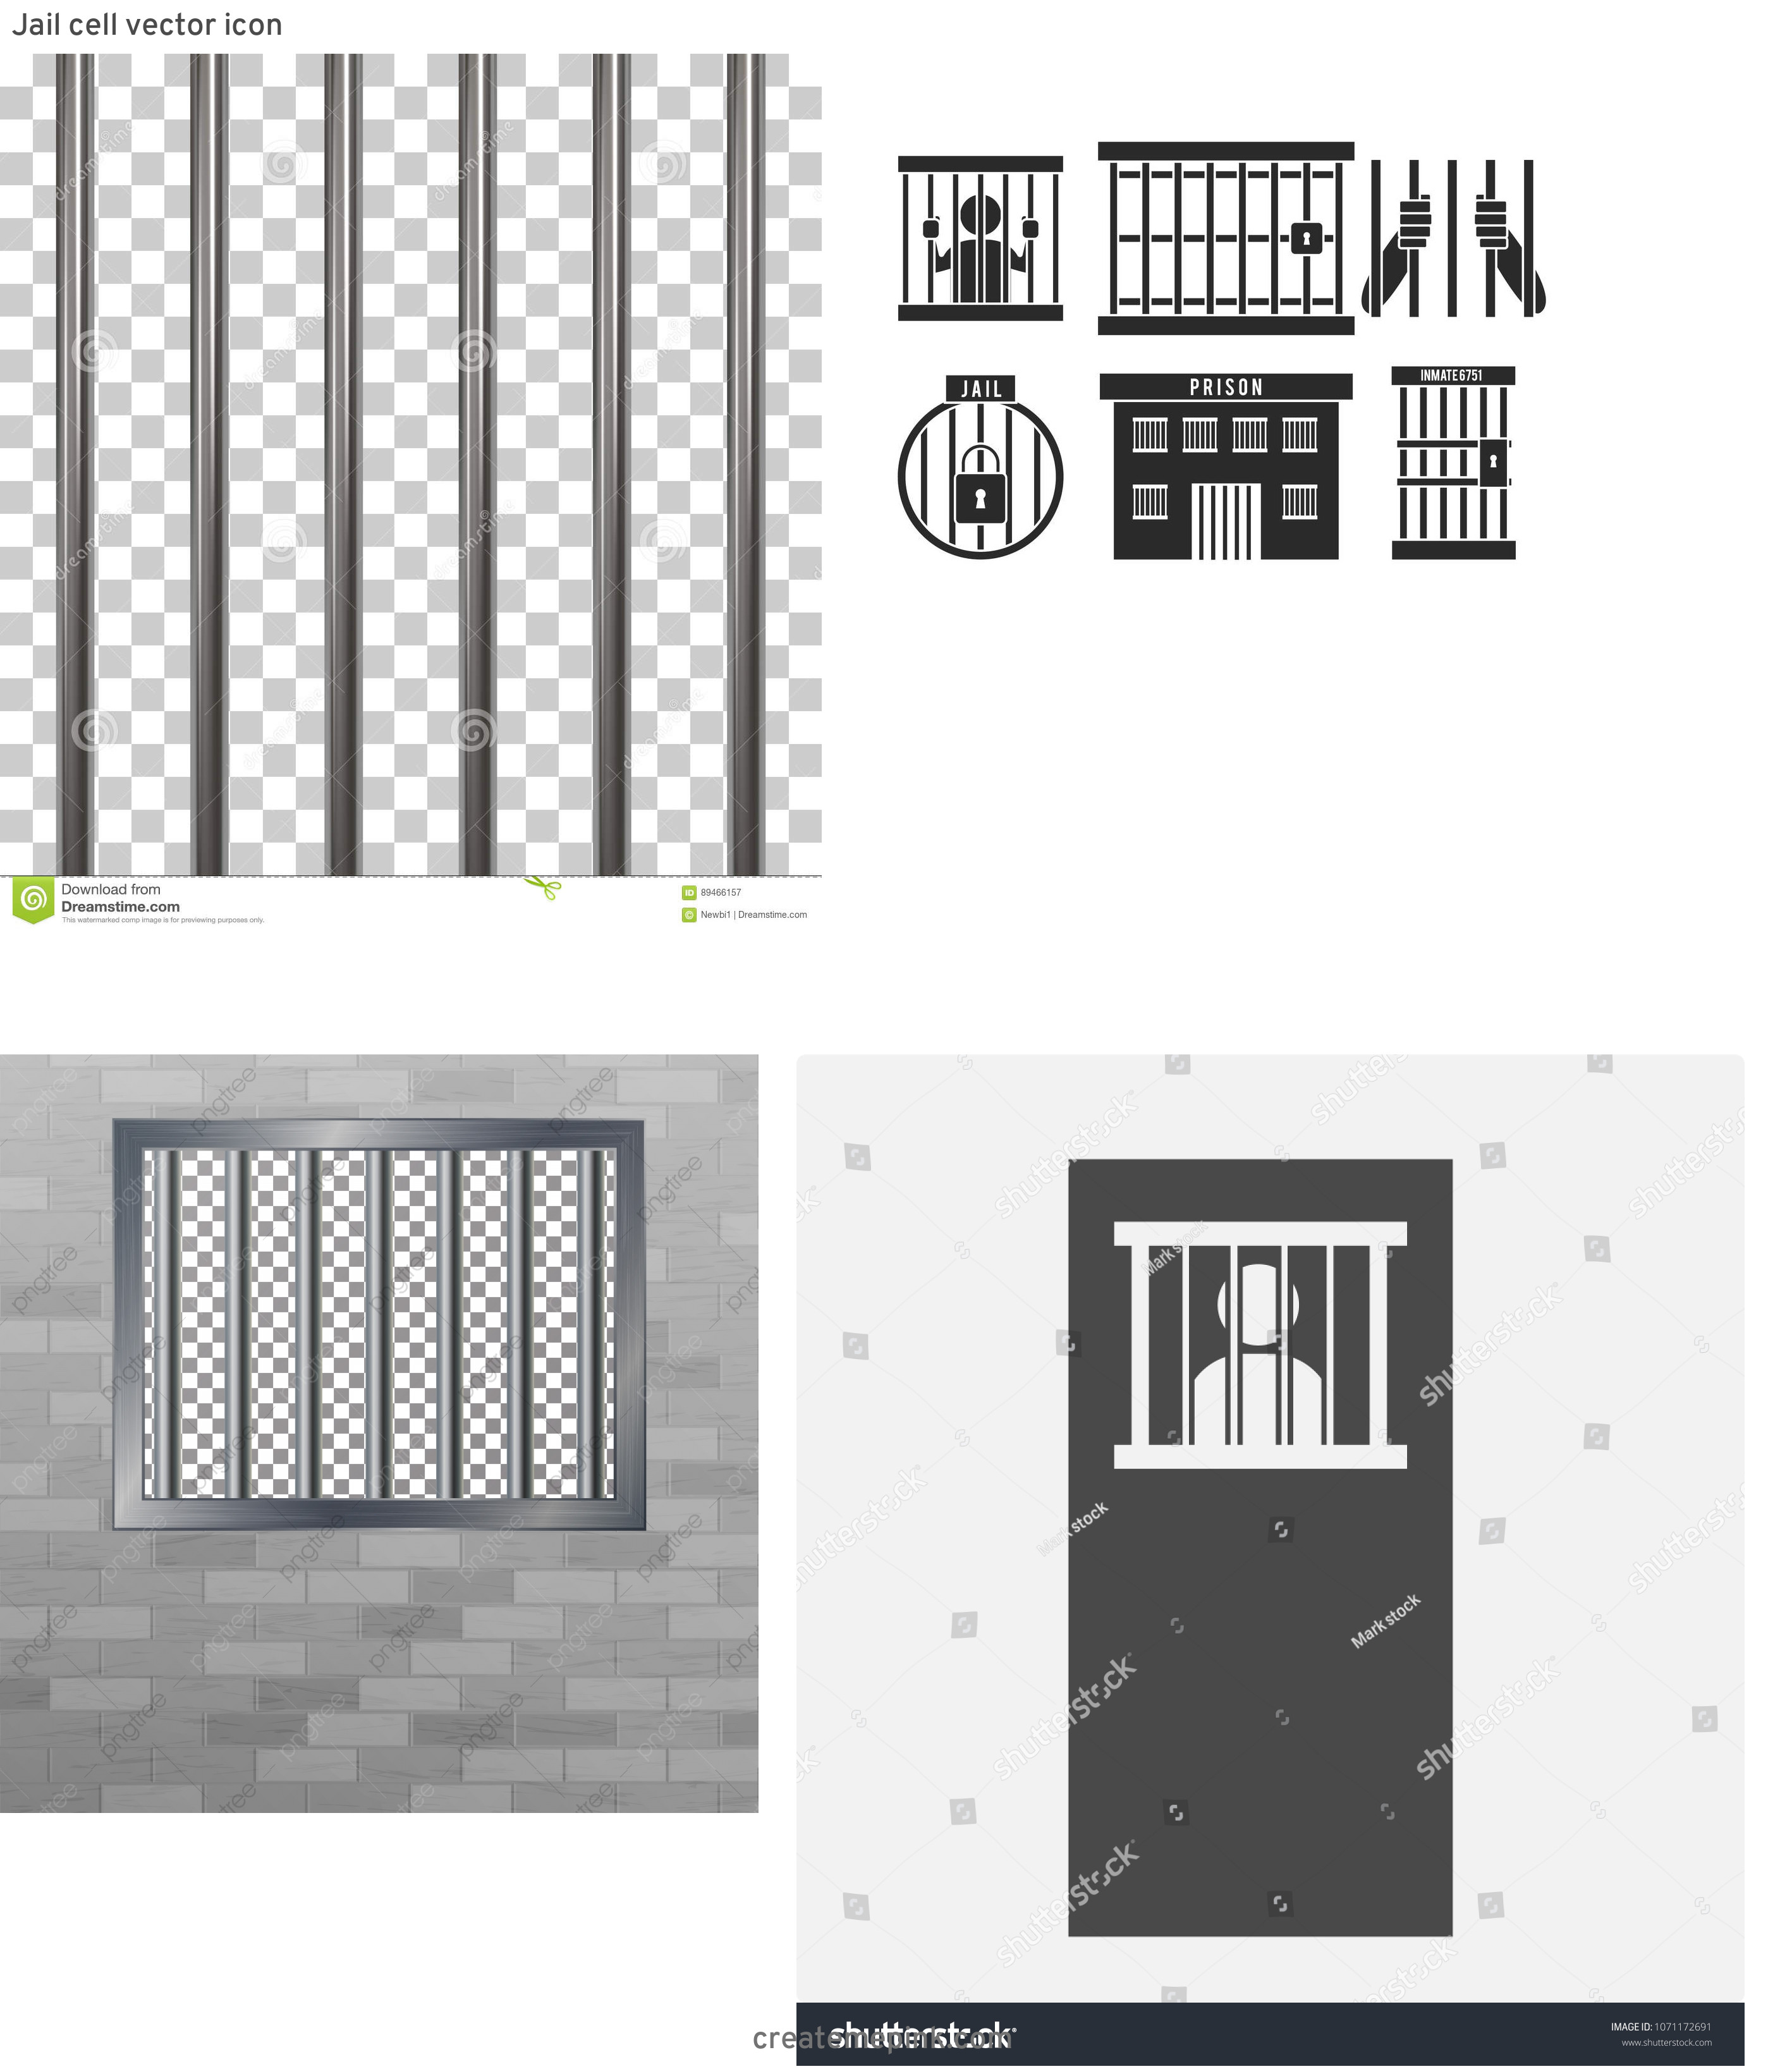 Jail Cell Vector: Jail Cell Vector Icon